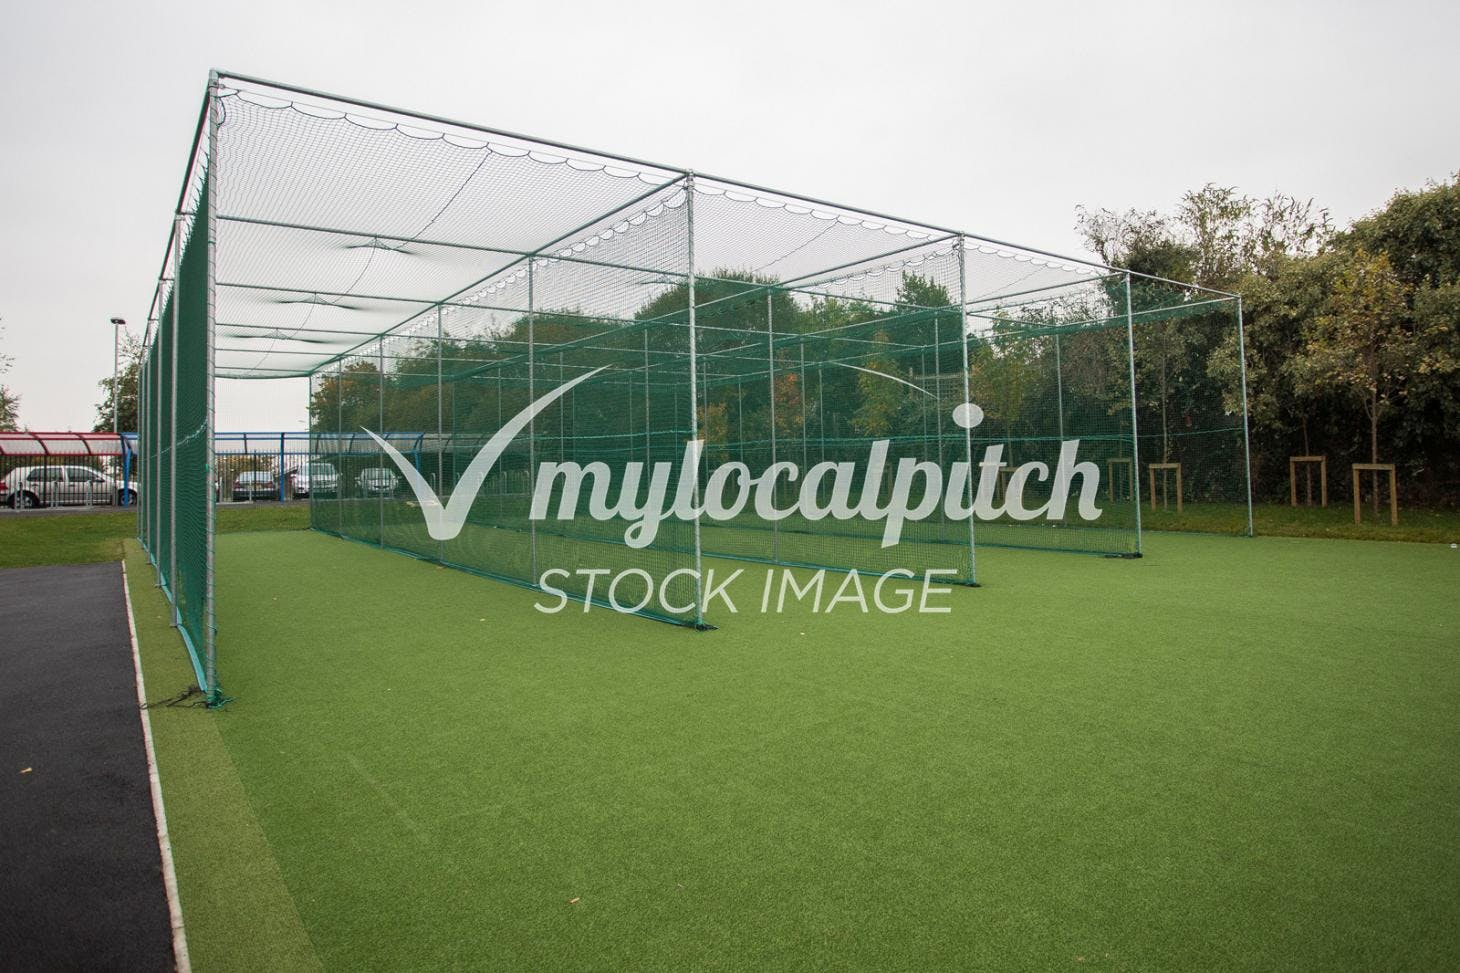 Beddington Park Nets | Artificial cricket facilities